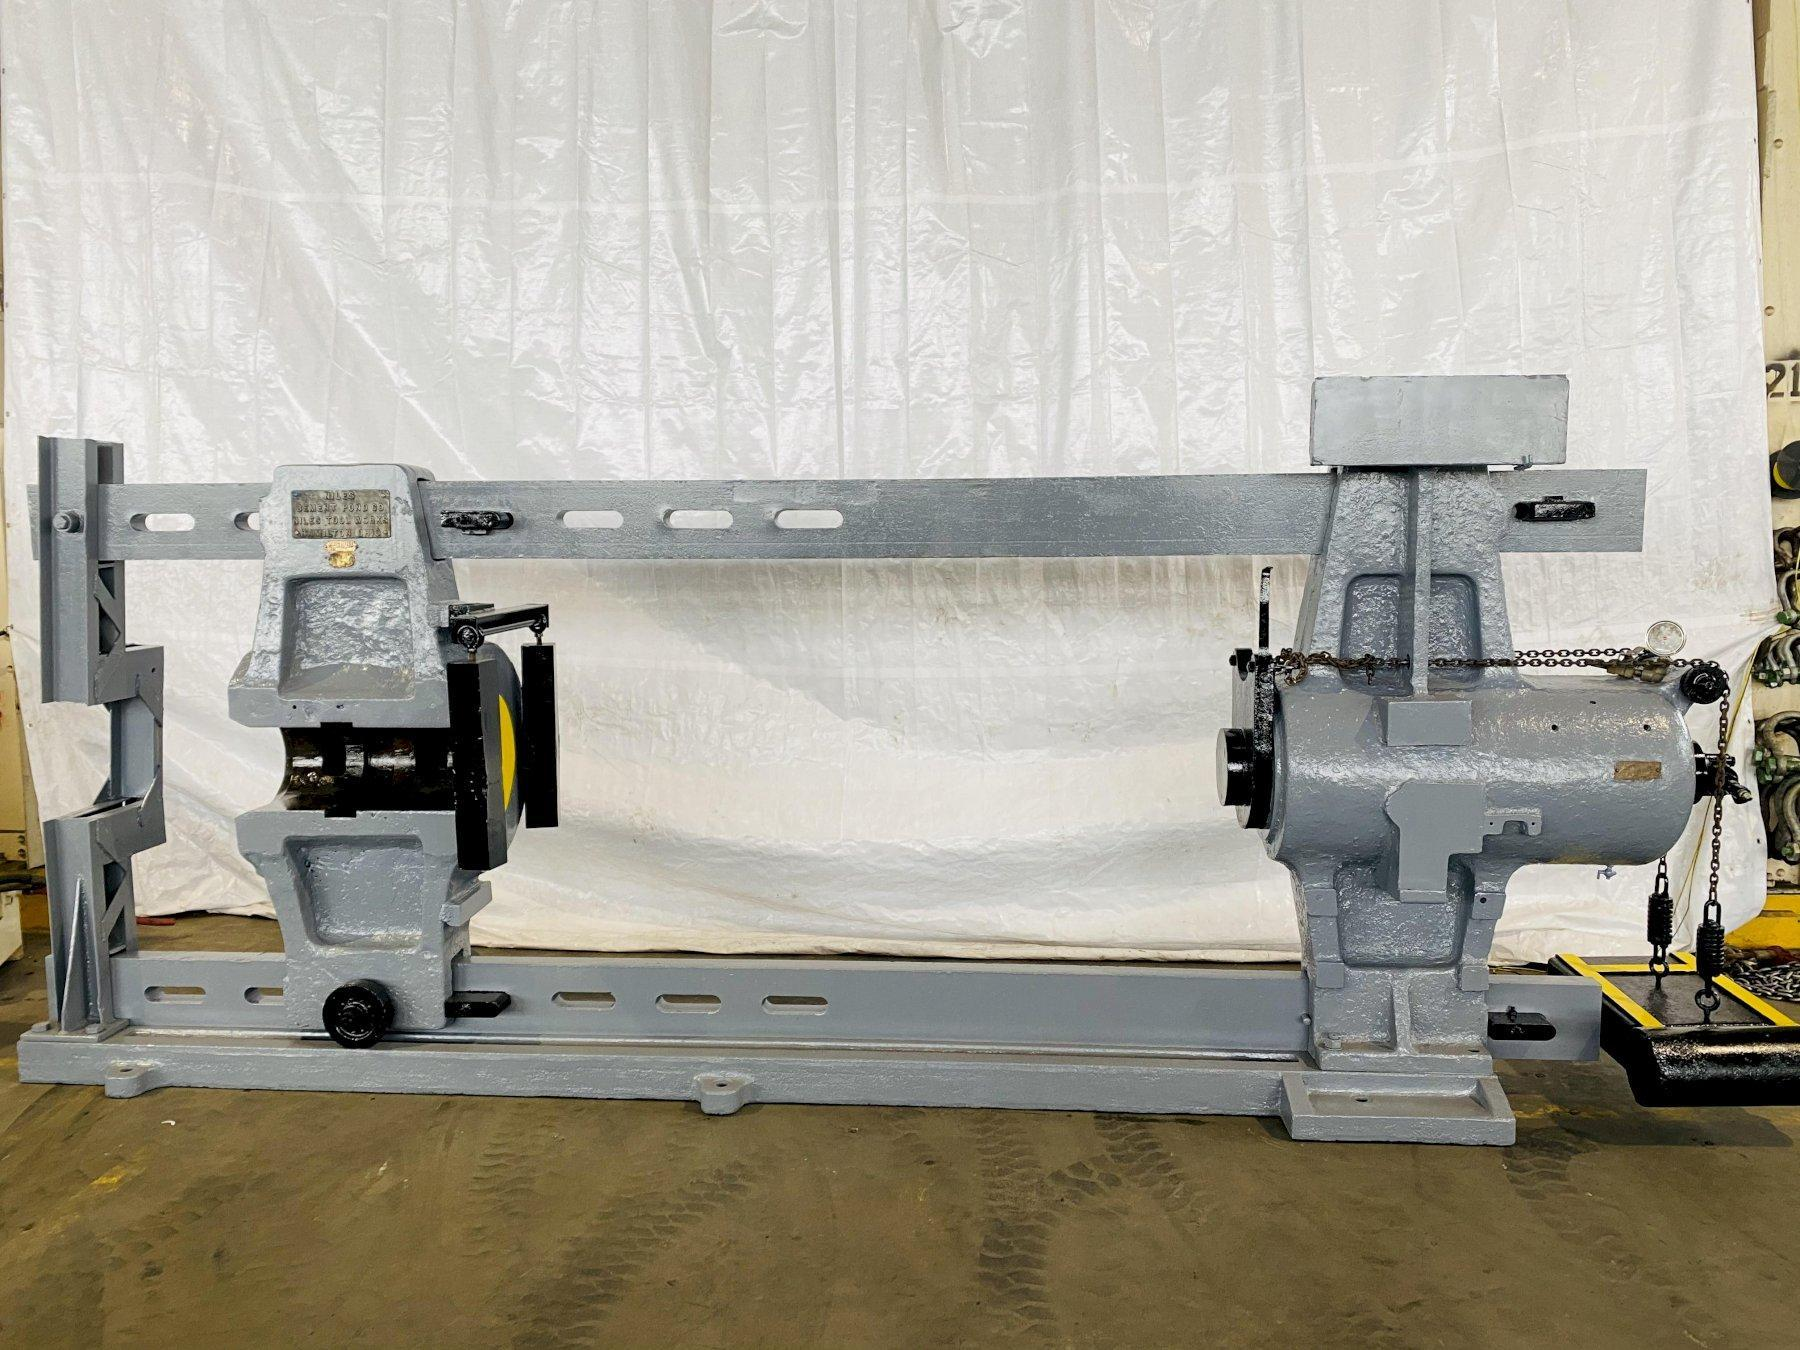 400 Ton x 12' Niles Hydraulic Horizontal Wheel Press